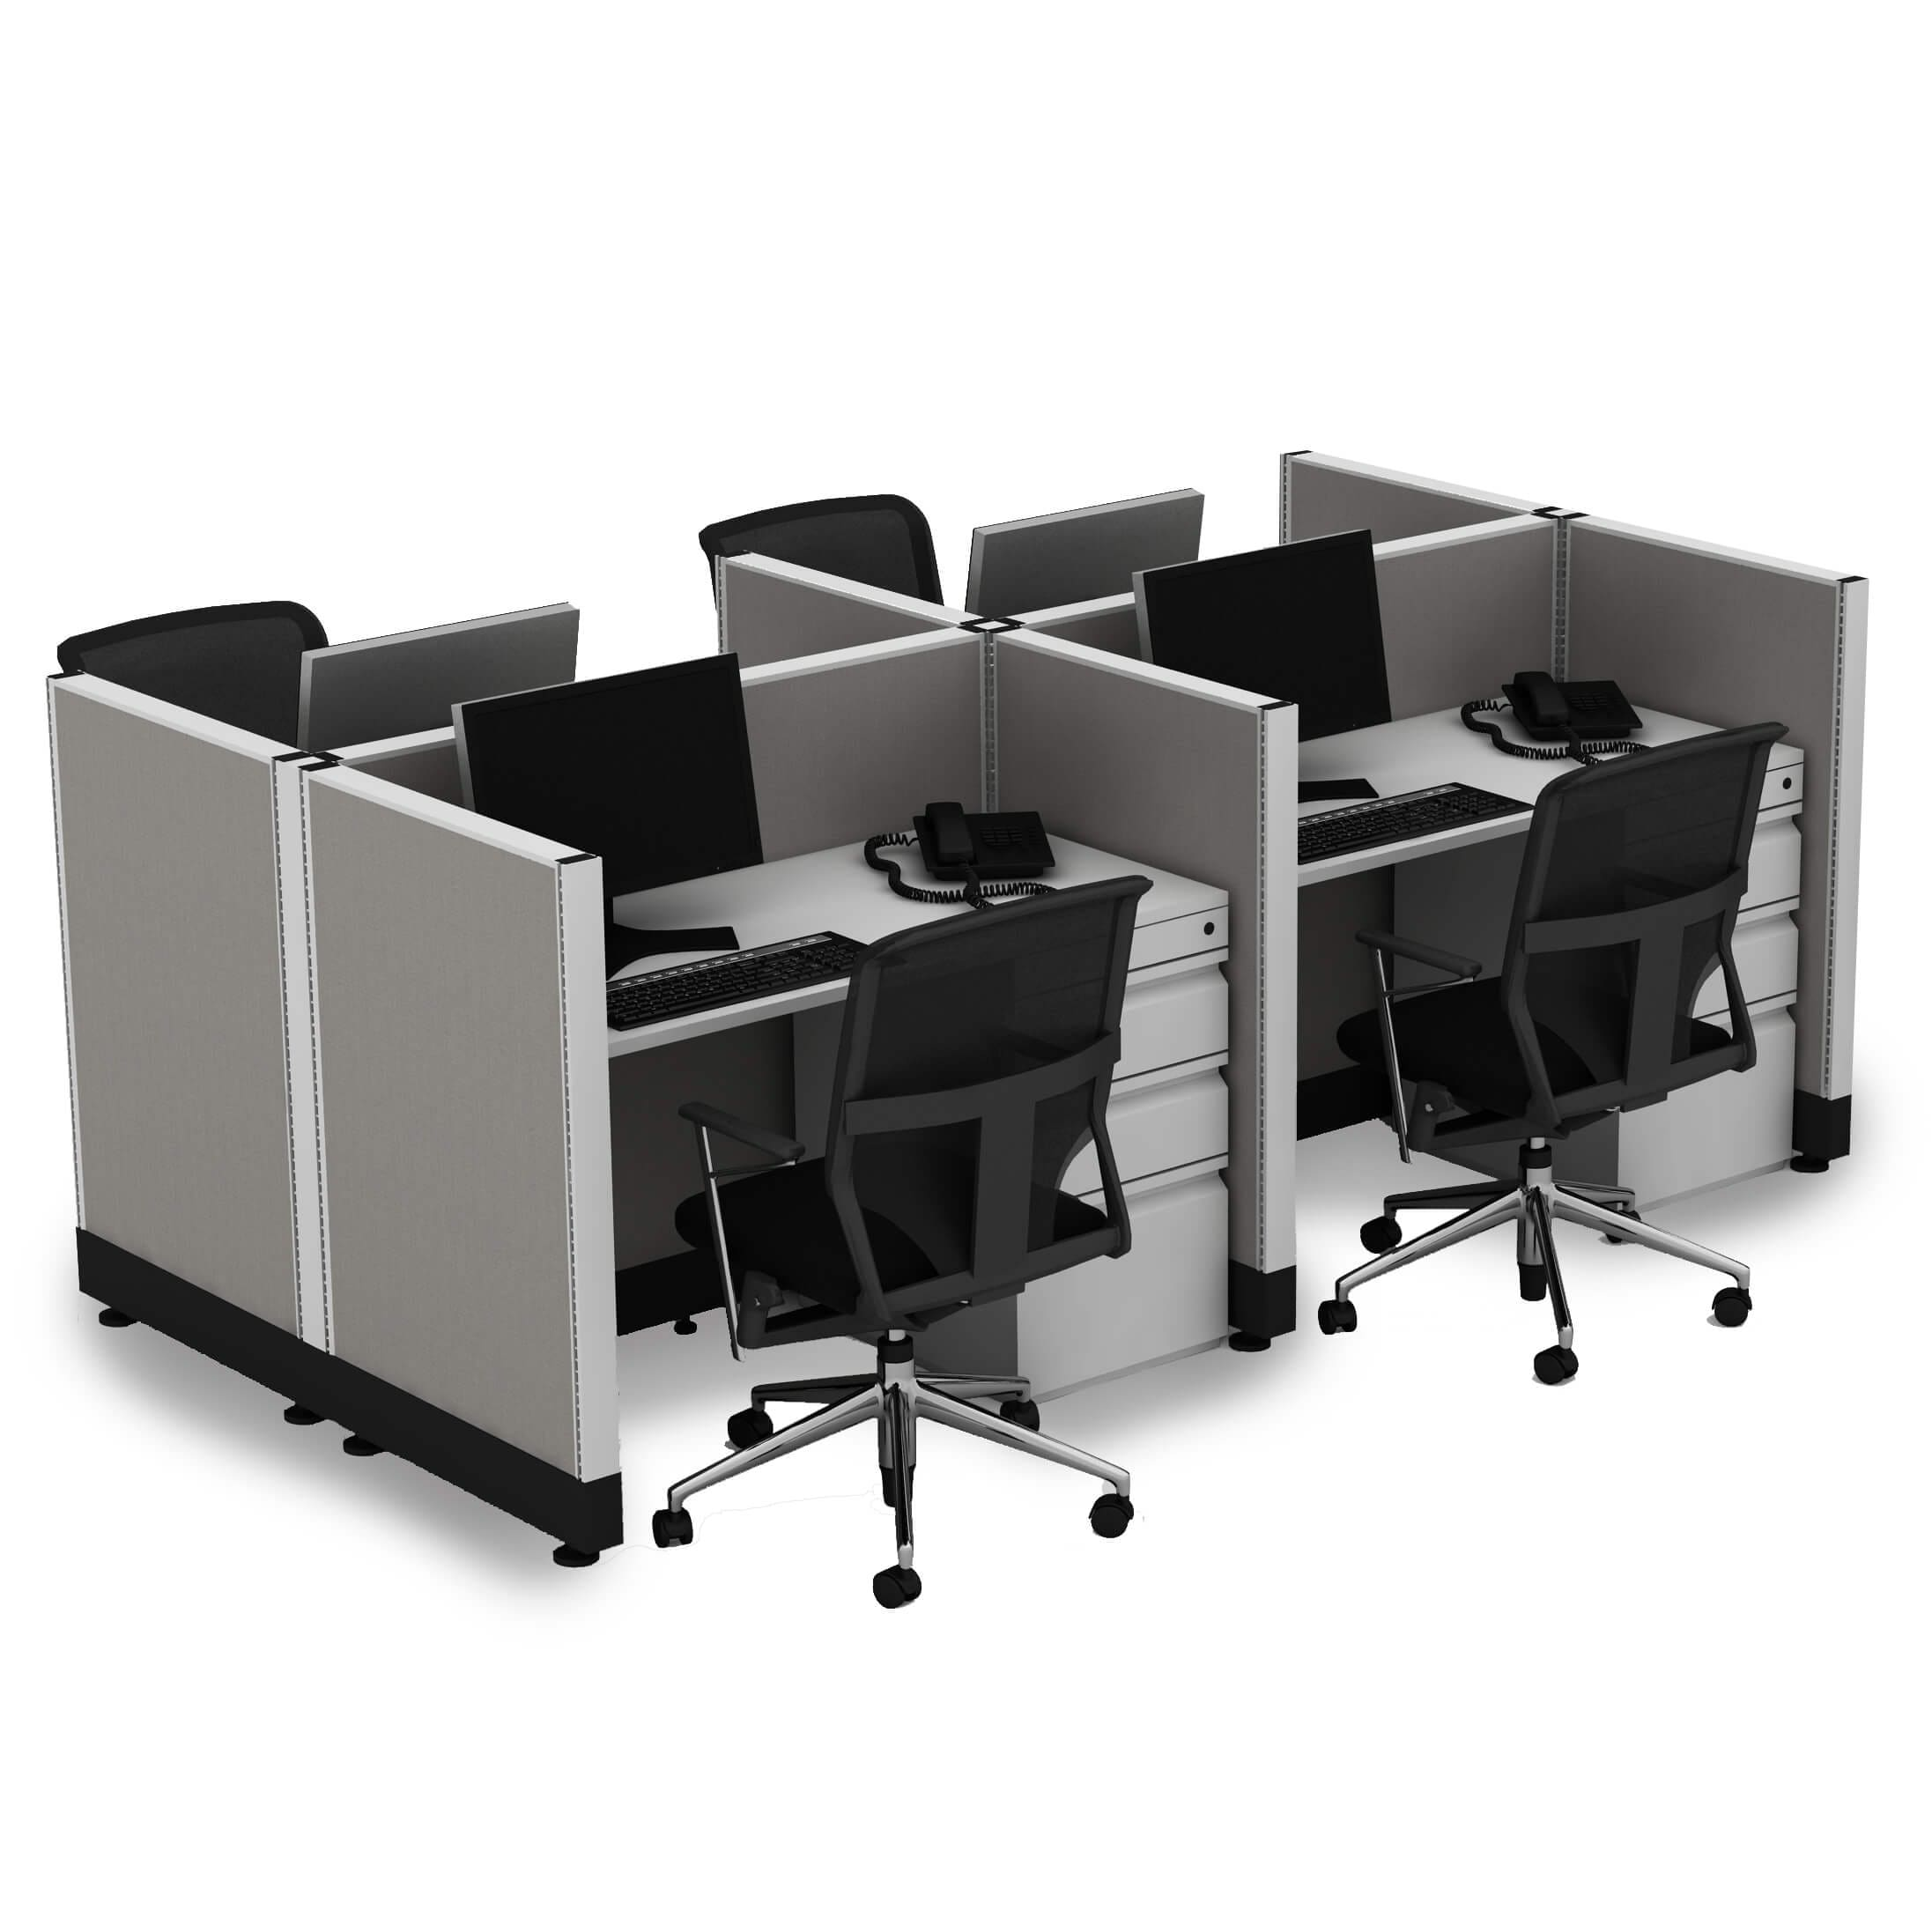 Small Office Cubicles 39H 4pack Cluster Unpowered (3x4 - Espresso Desk White Paint - Assembly Required)